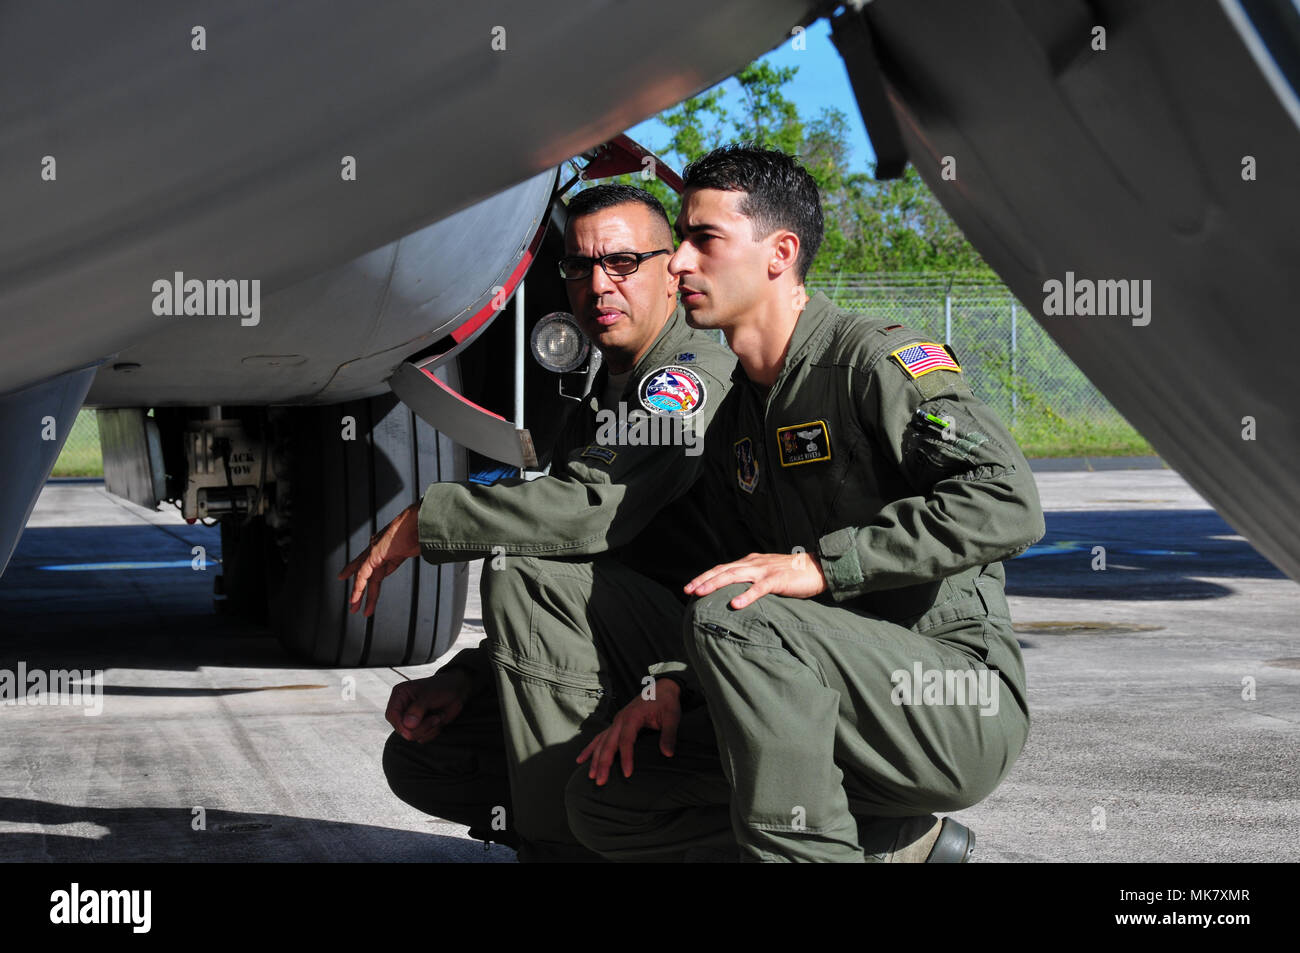 2nd Lt. Isaias Rivera and the 198th Squadron Commander, Lt. Col. Evaristo